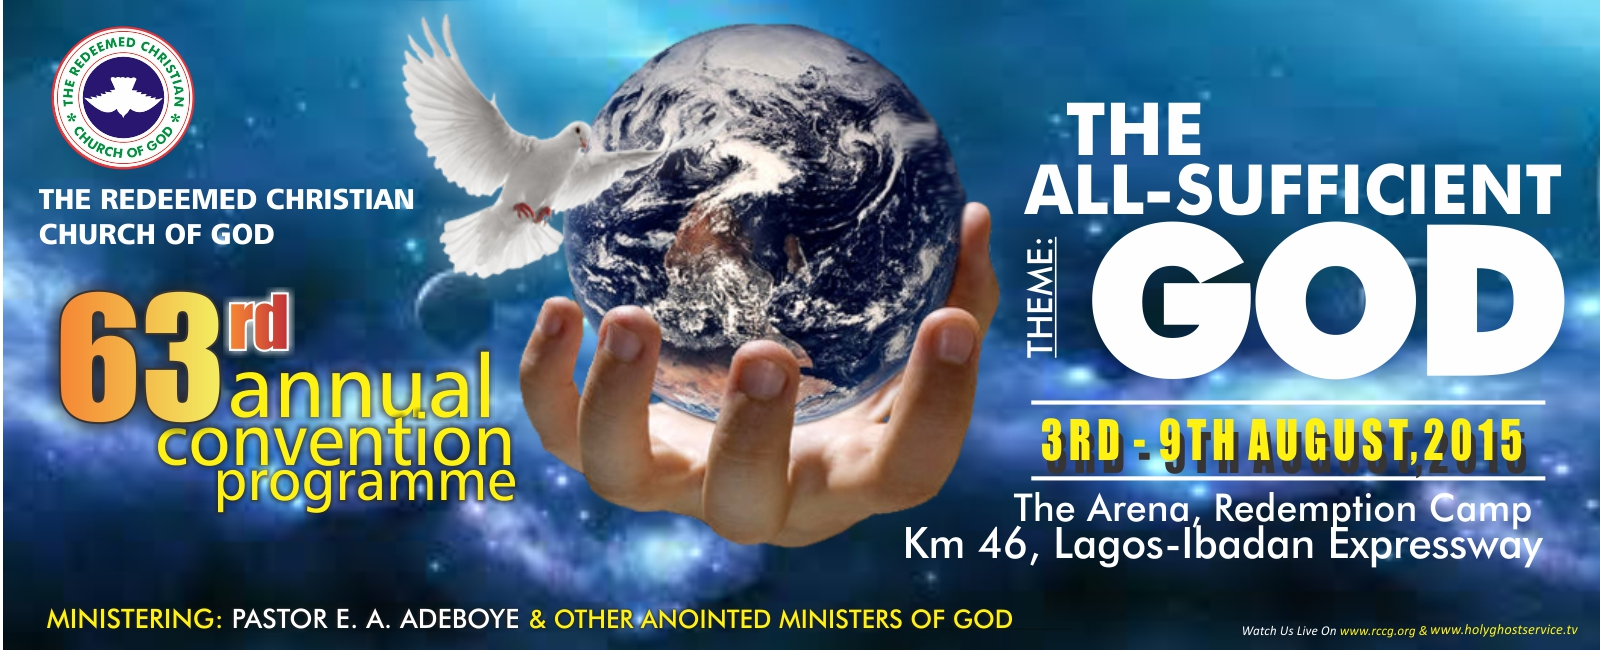 RCCG 63rd Annual Convention programme 2015 banner